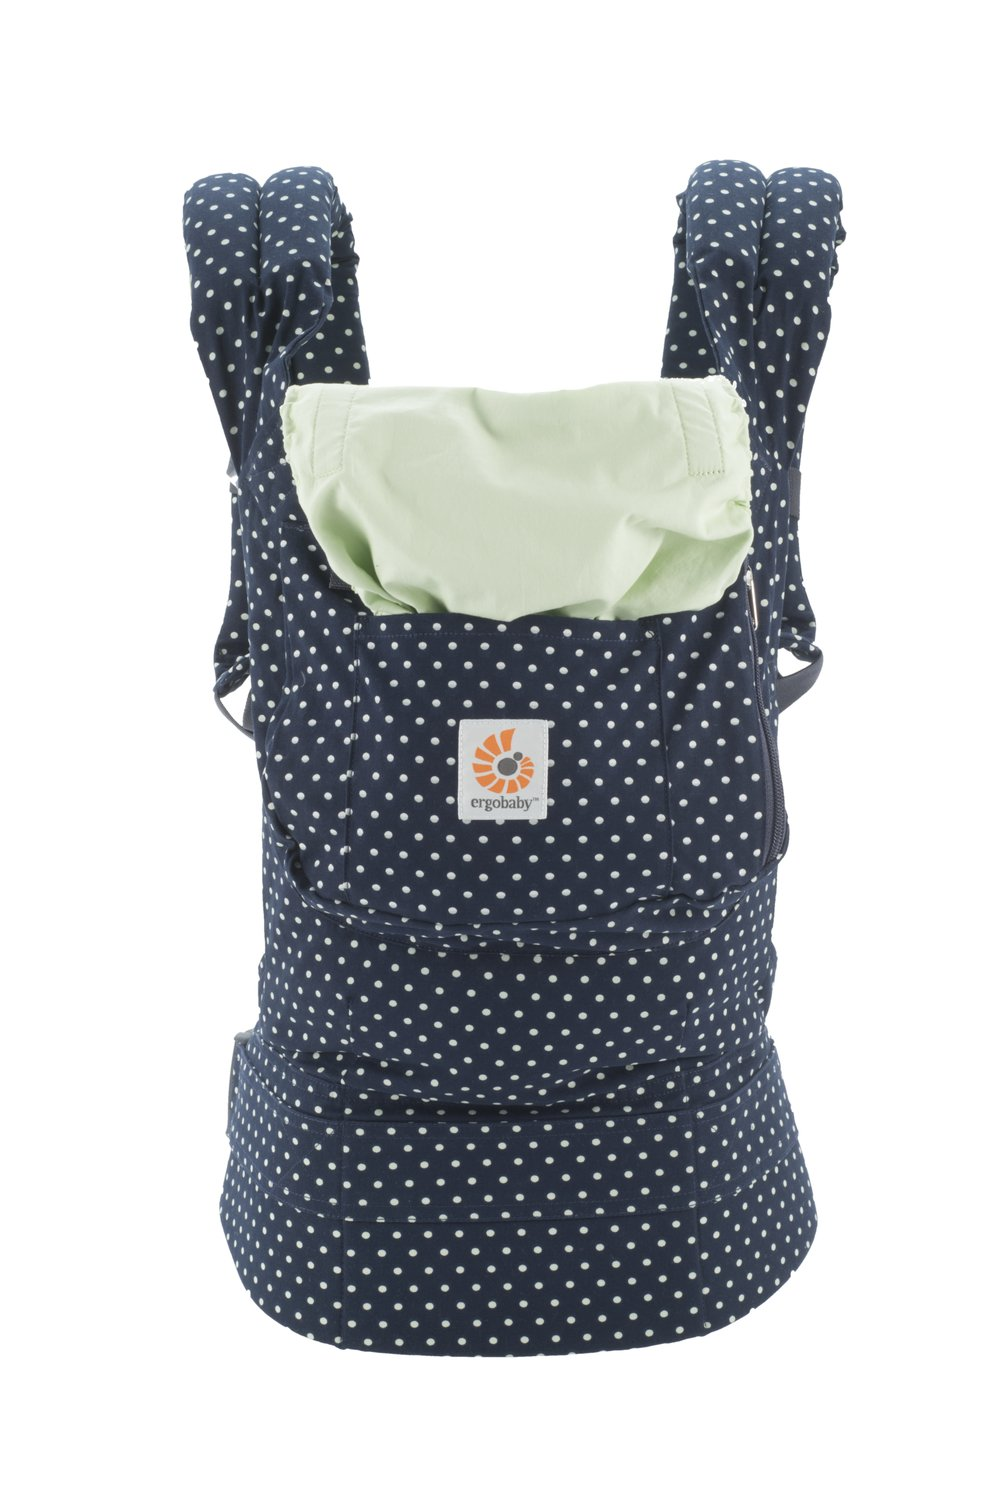 Ergobaby Original Award Winning Ergonomic Multi-Position Baby Carrier with X-Large Storage Pocket, Indigo Mint Dots